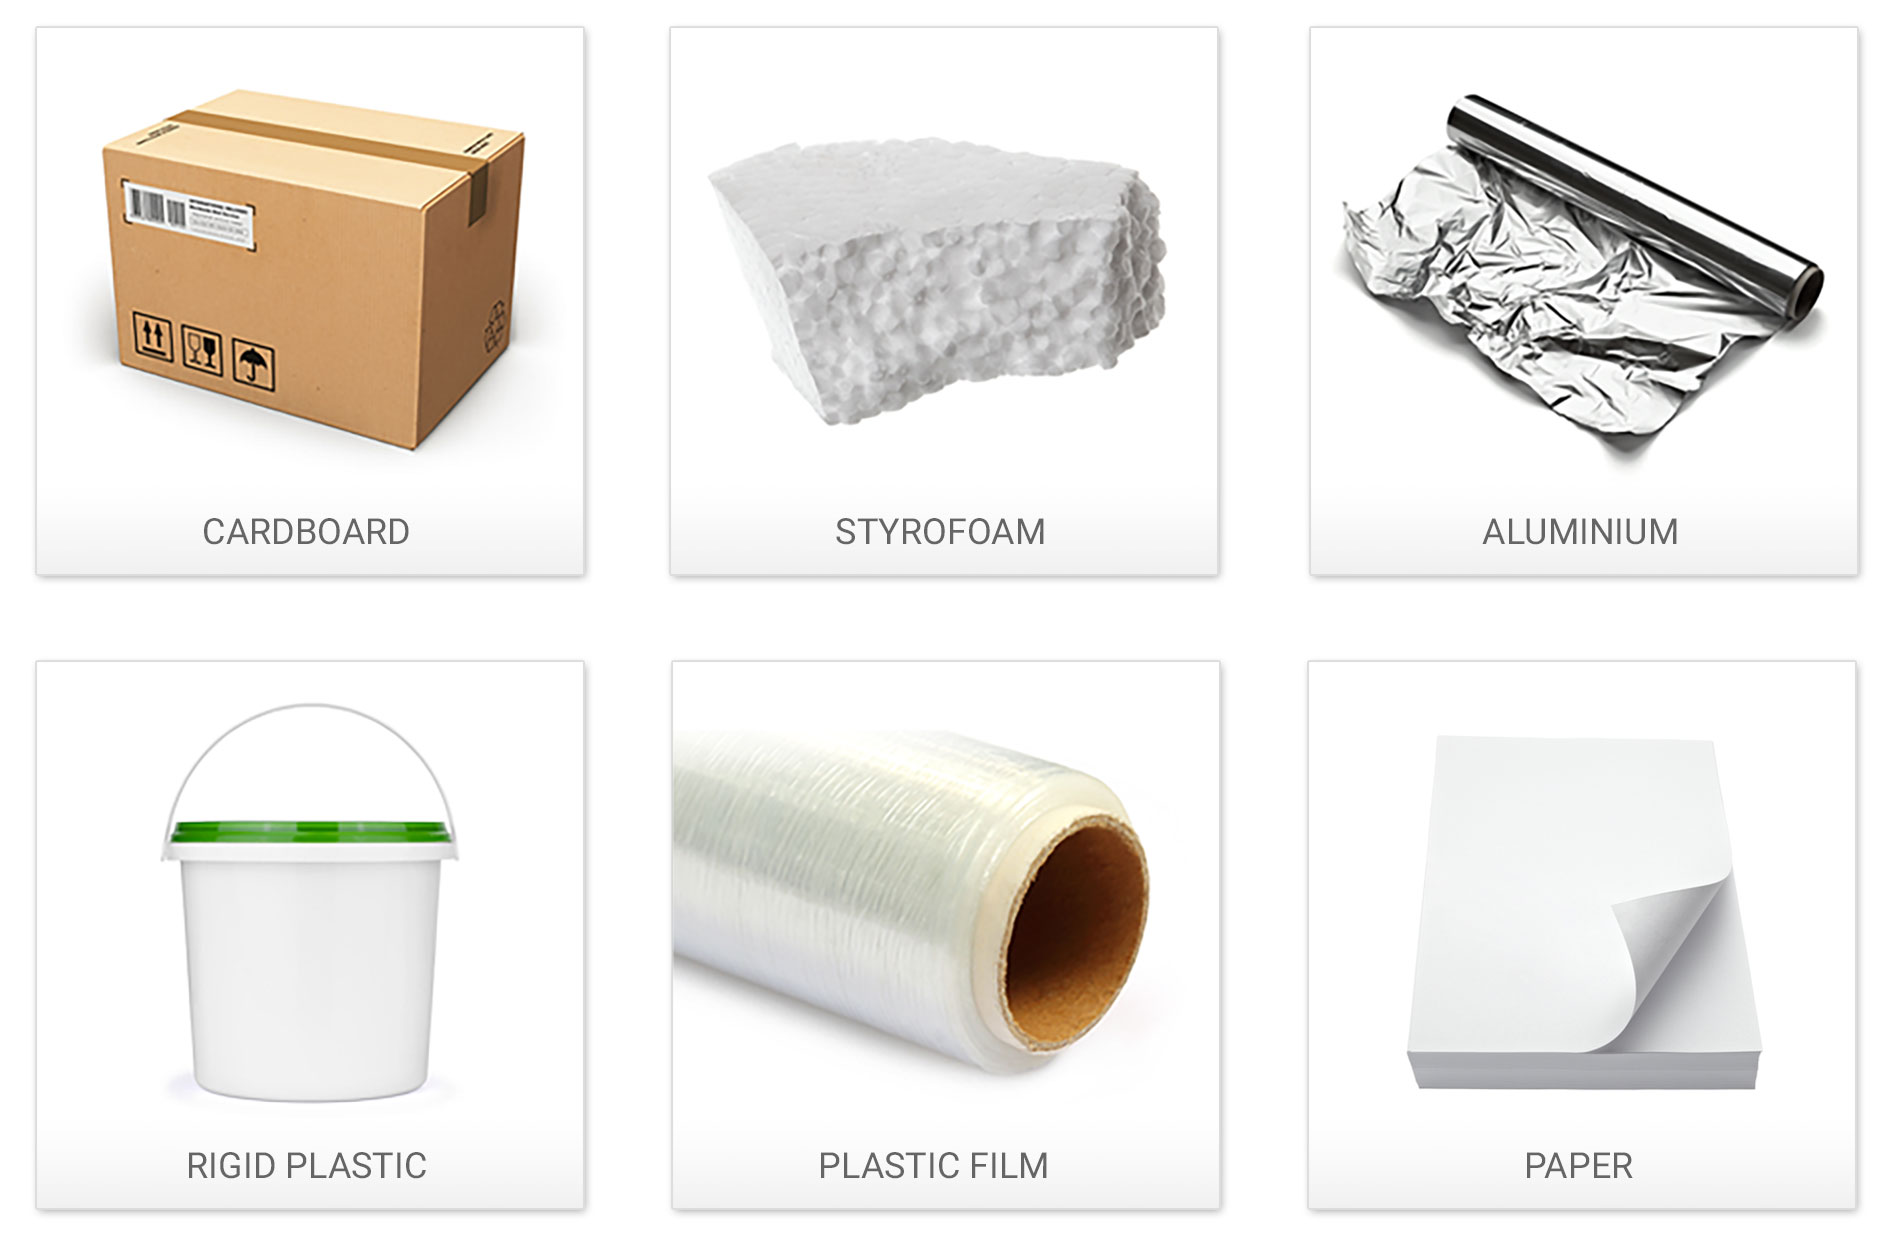 Recyclable material for your business